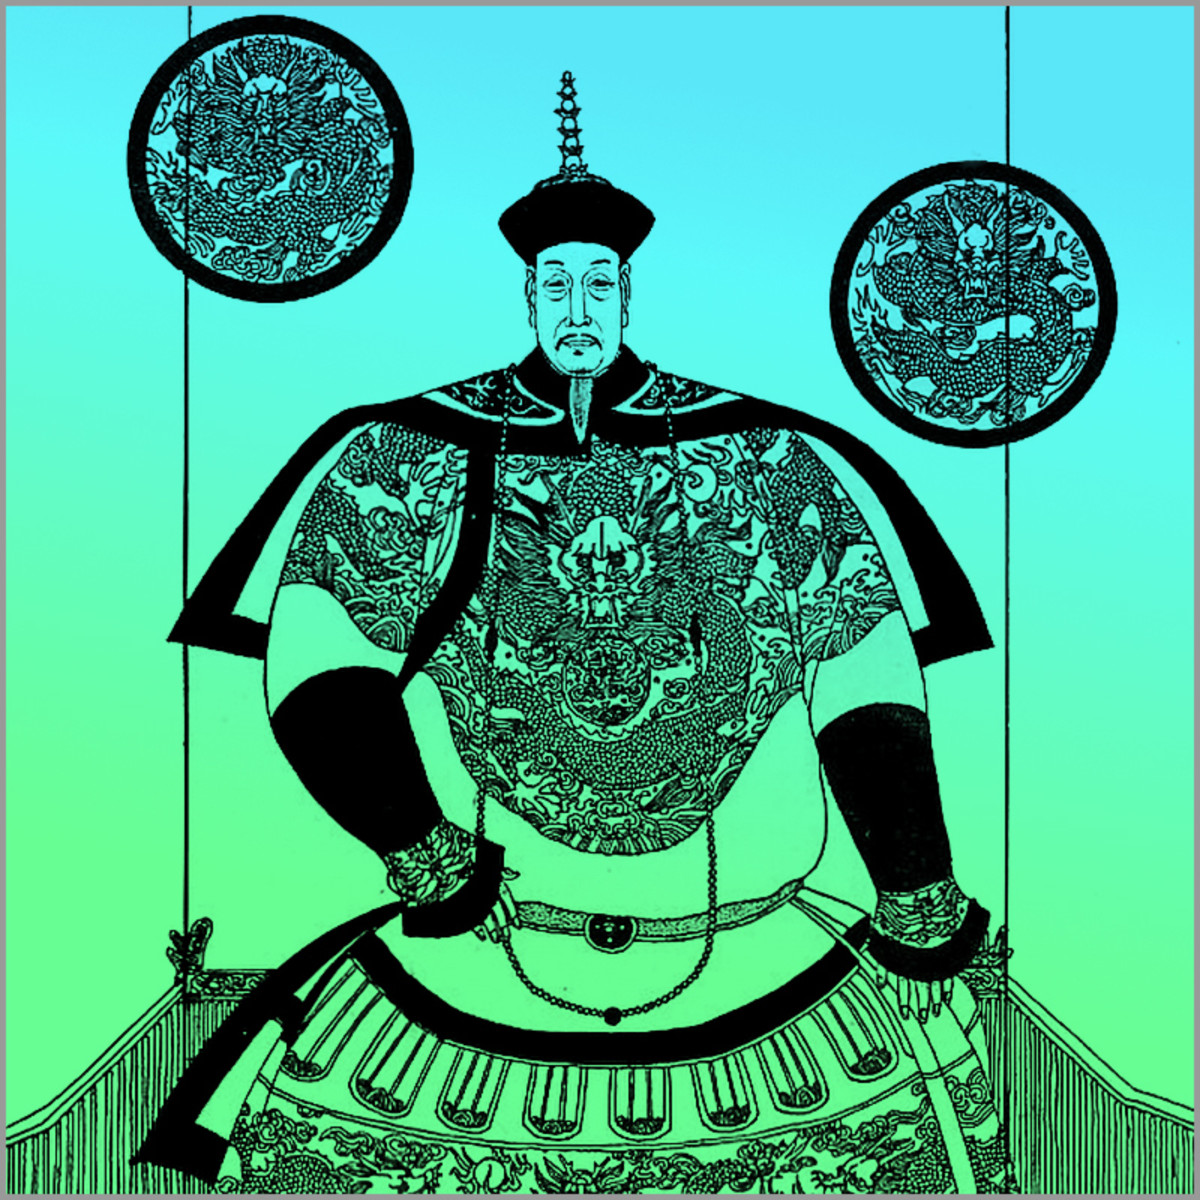 "Emperor Qianlong. Rather full of himself, he styled himself as the ""old man of 10 perfections"" in his later years. However, he did reign over one of China's most prosperous eras."